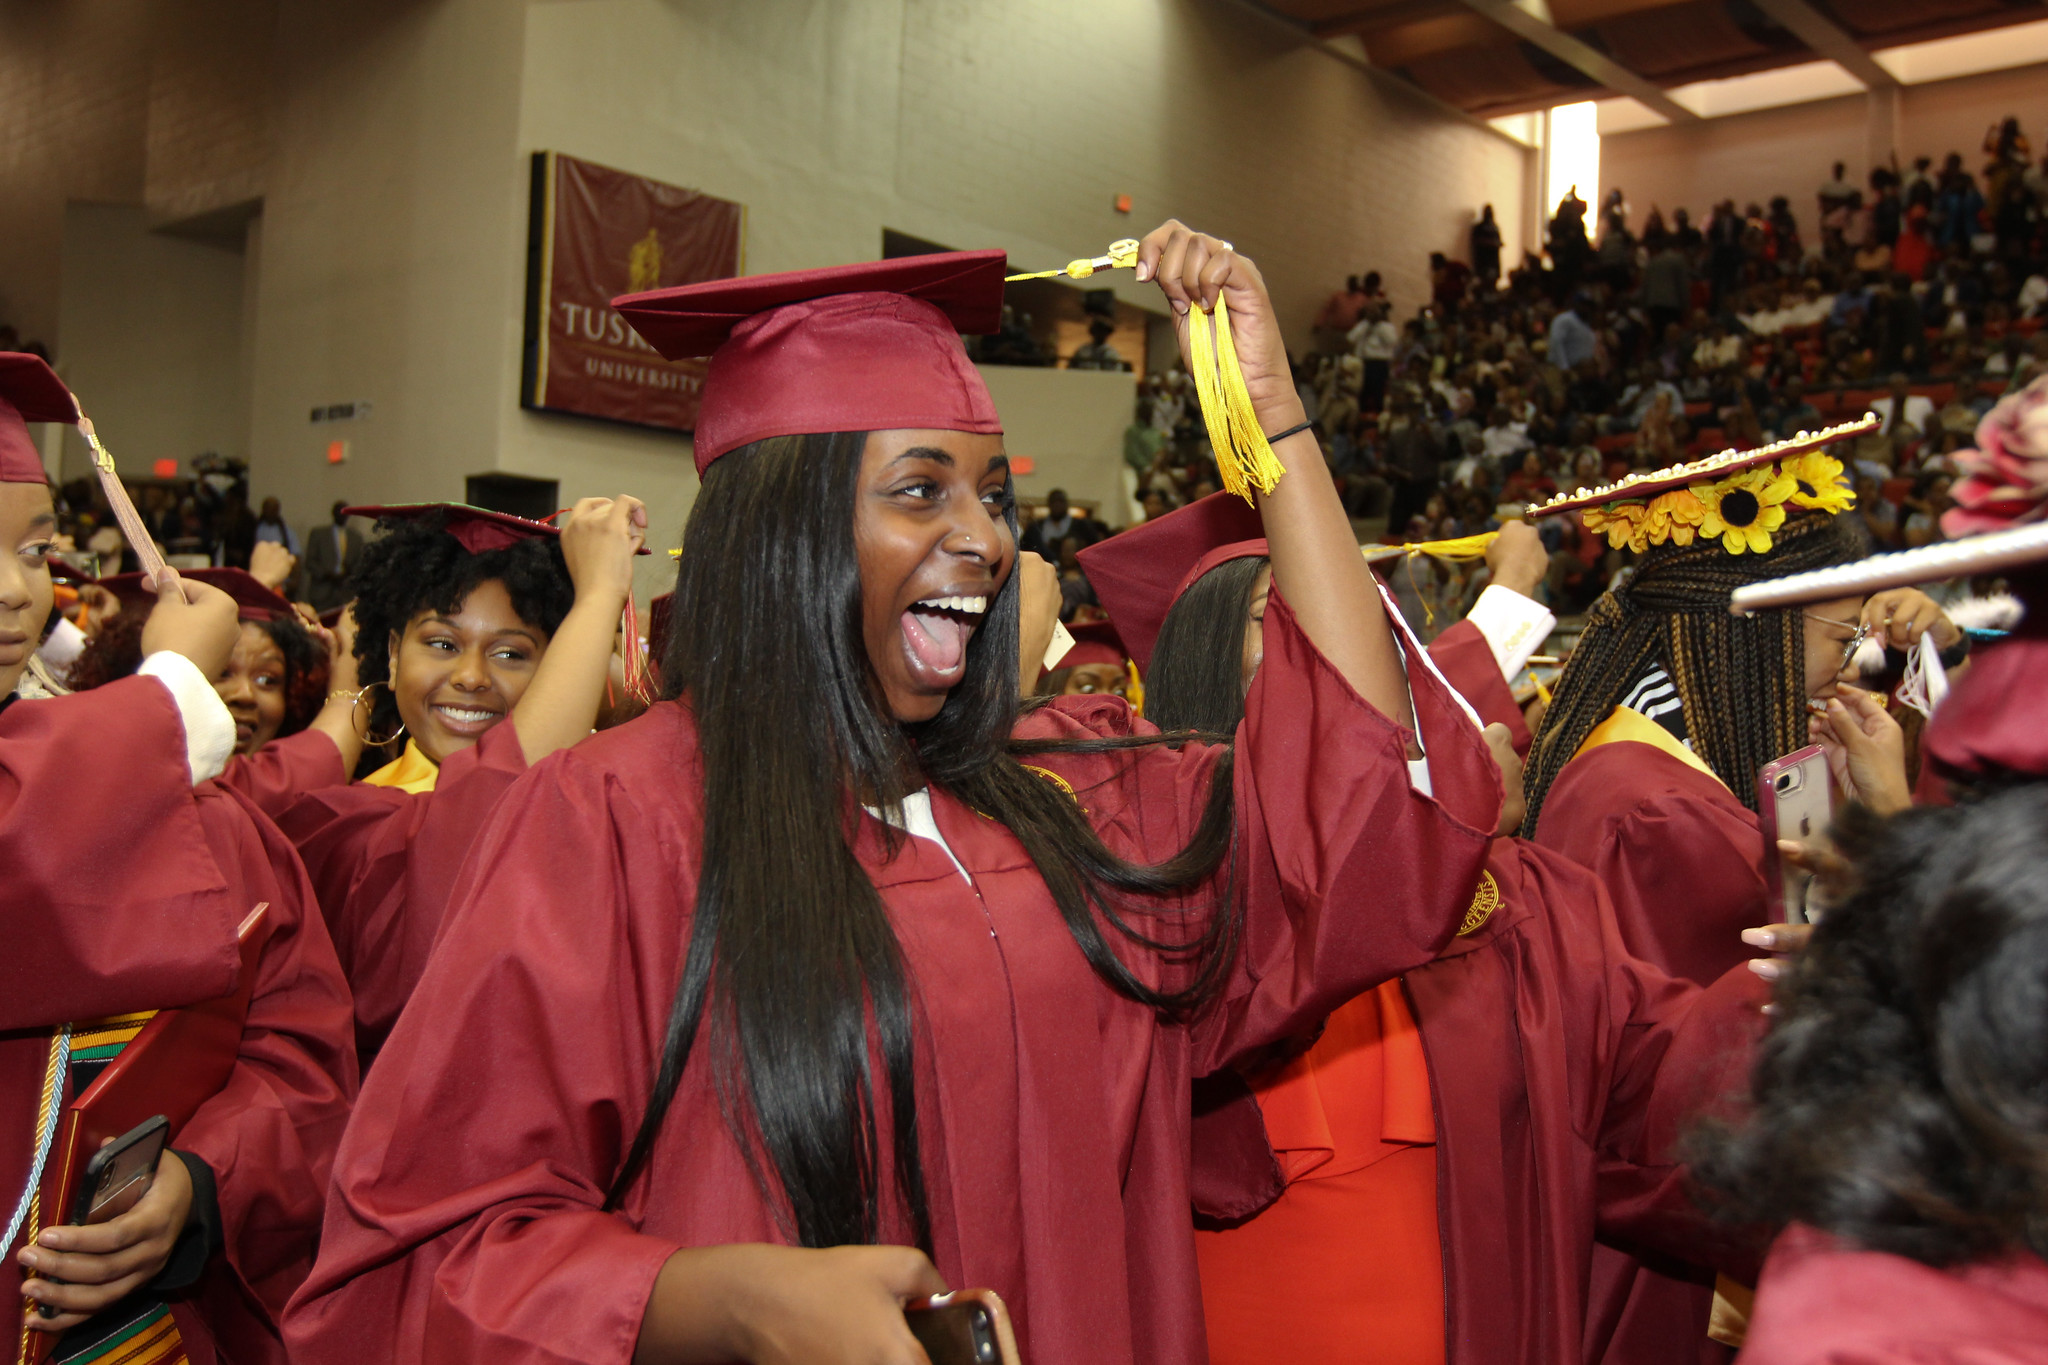 Graduates turn tassels, to become official alumni of Tuskegee University.